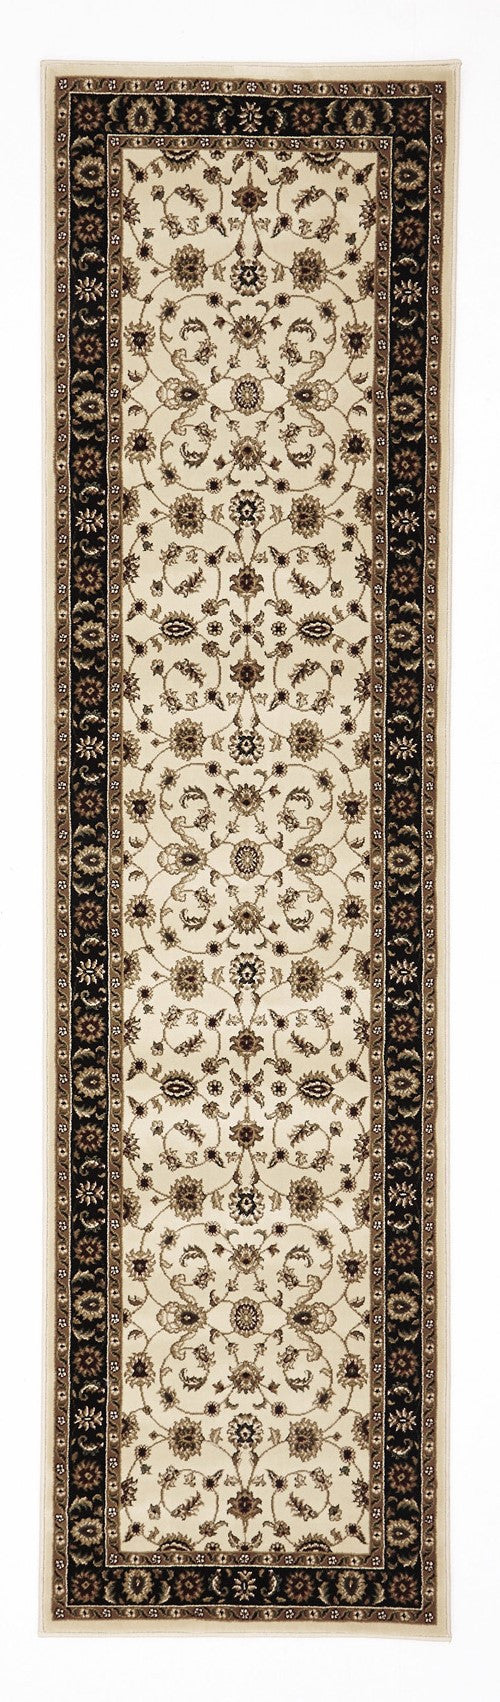 Sydney Classic Rug Ivory with Black Border - aladdinrugs - 6